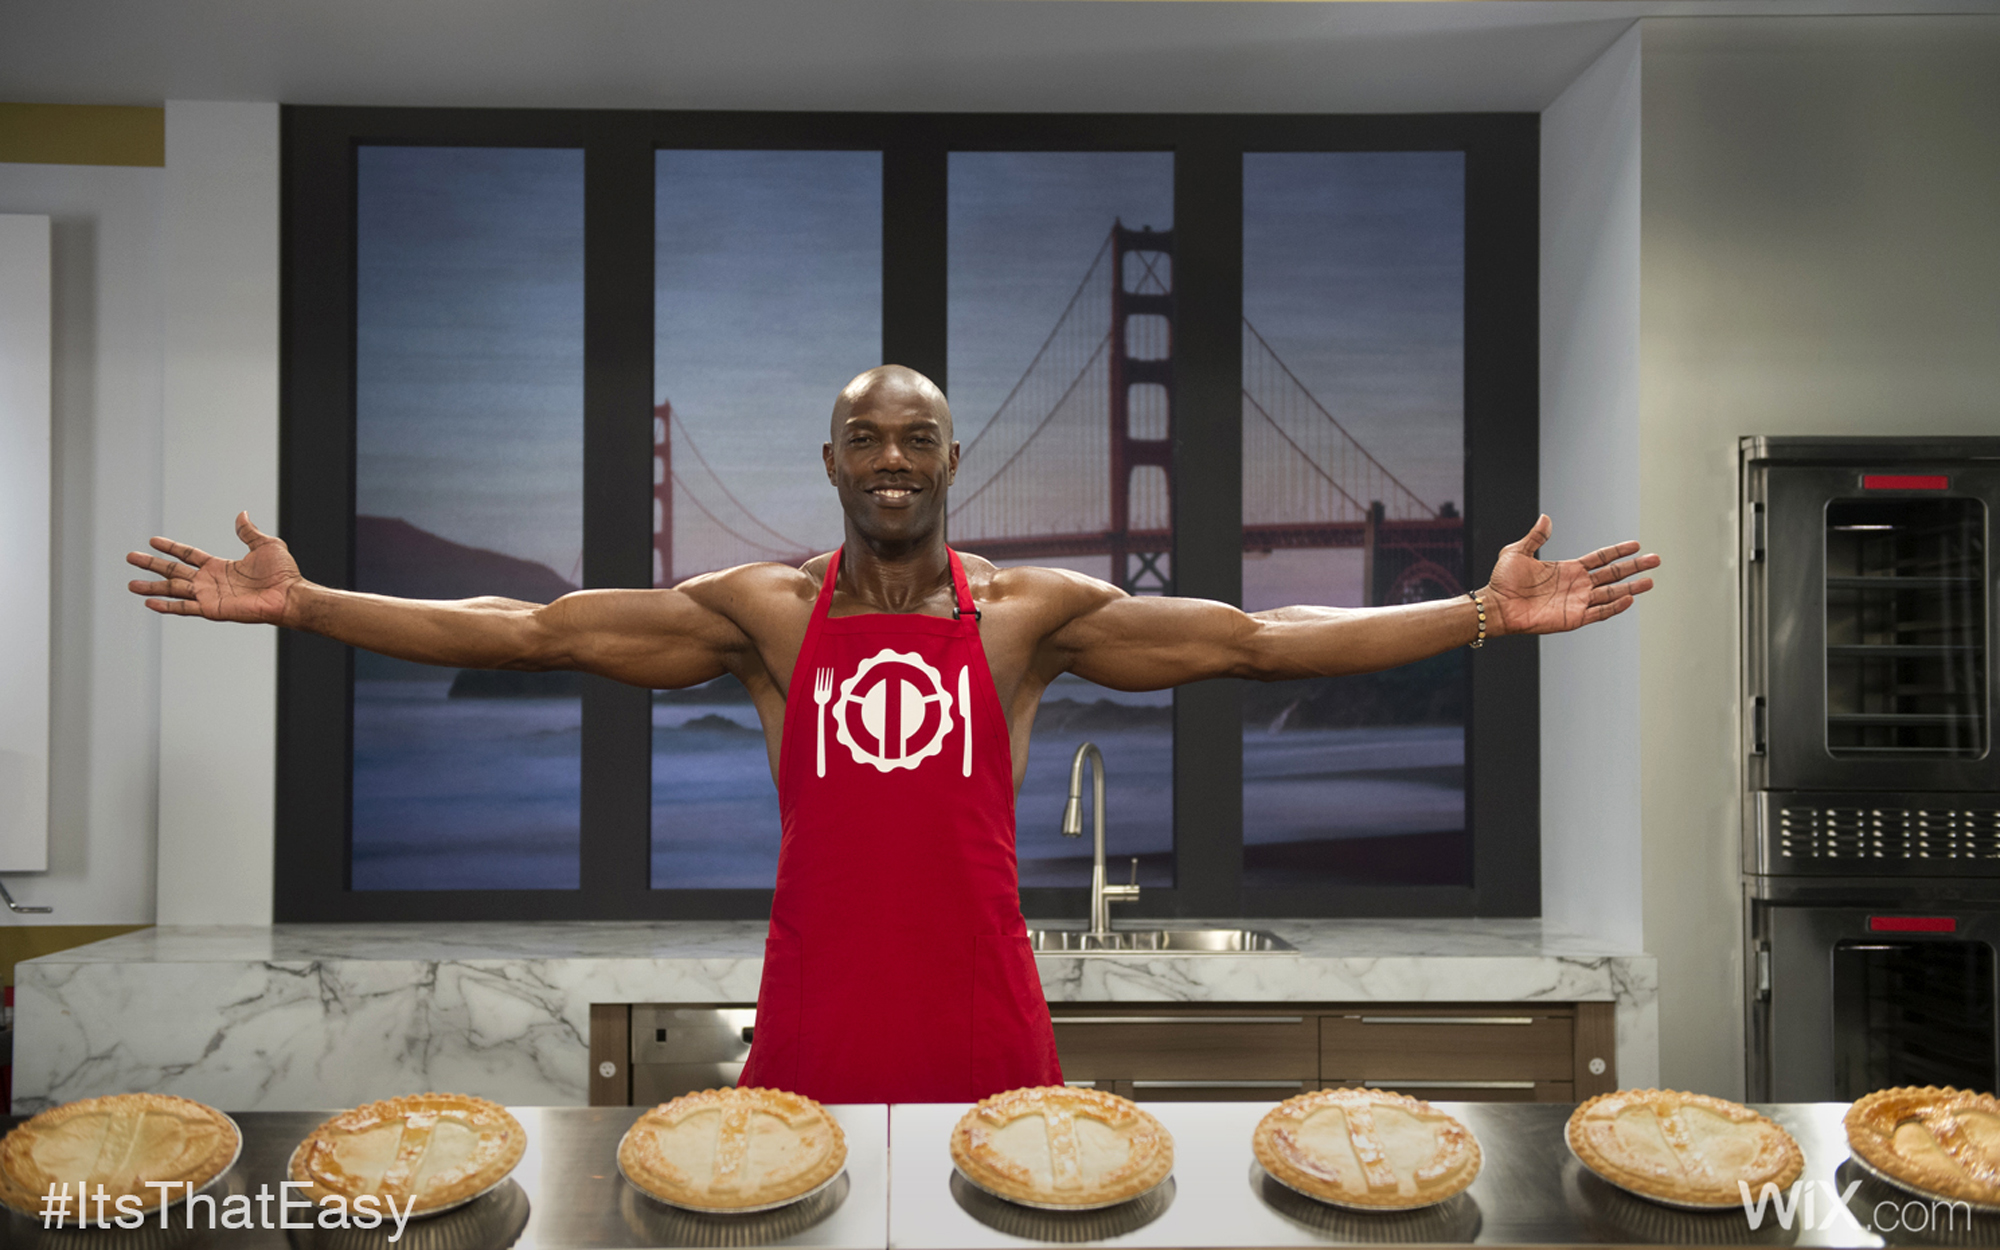 This image provided by Wix.com shows a portion of the company's television ad scheduled to be aired during the Super Bowl on Sunday, Feb. 1, 2015, this one featuring retired football player Terrell Owens. (AP Photo/Wix.com, Erik Isakson Photographics)